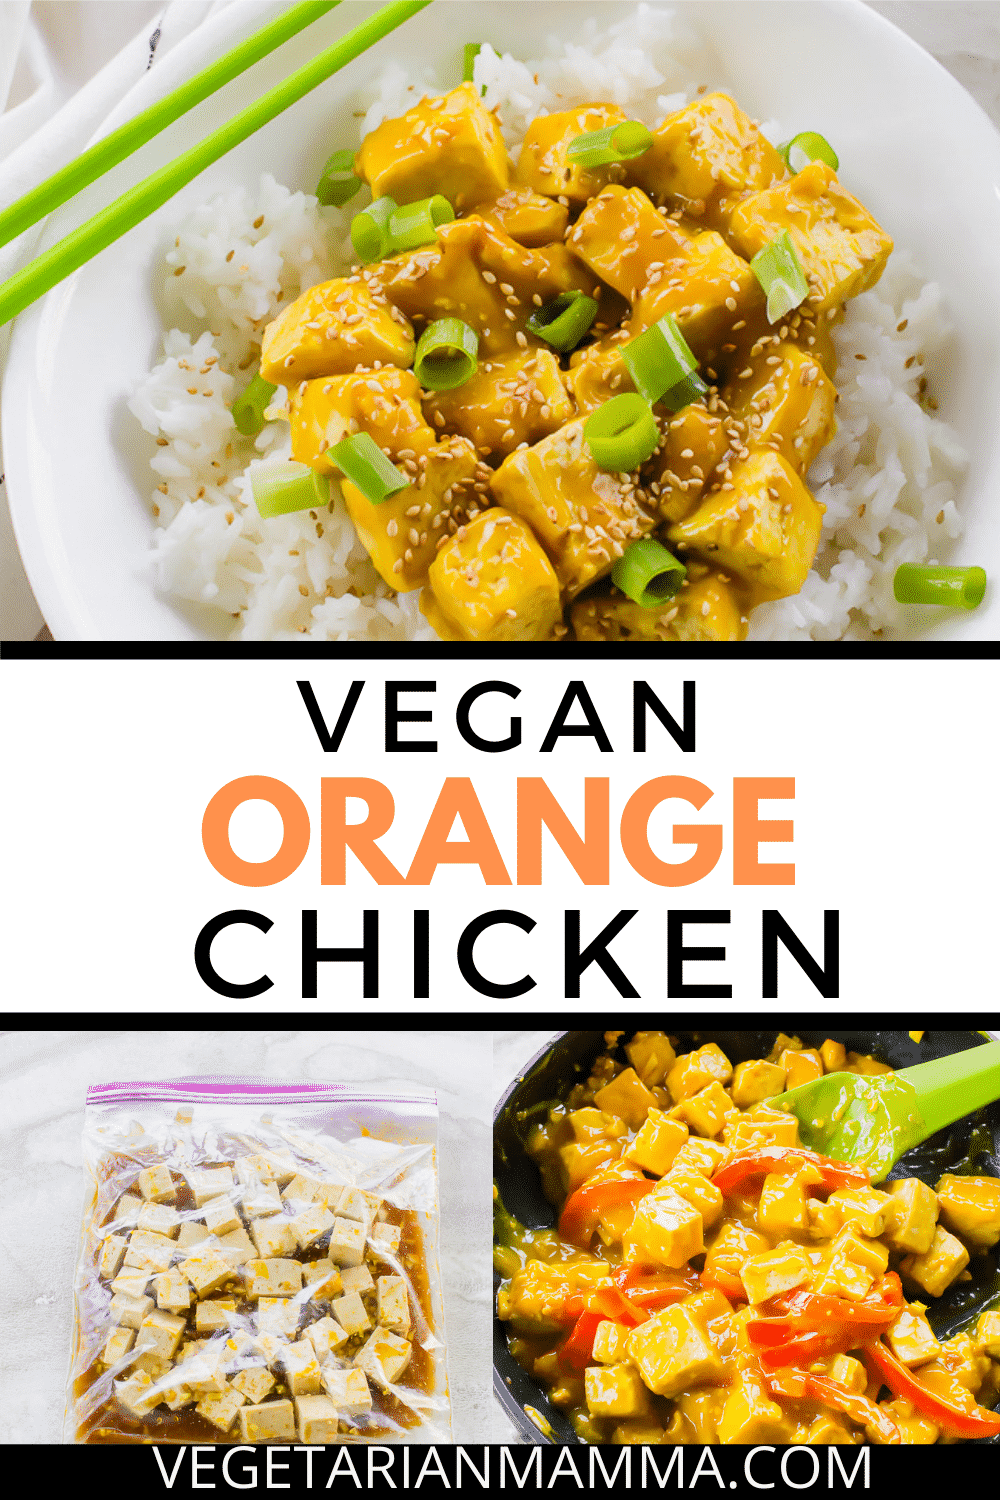 Vegan Orange Chicken is a delicious take on Panda Express Orange Chicken. It is an easy tofu recipe that your entire family will love! #pandaexpress #orangechicken #tofu #veganorangechicken #orangetofu